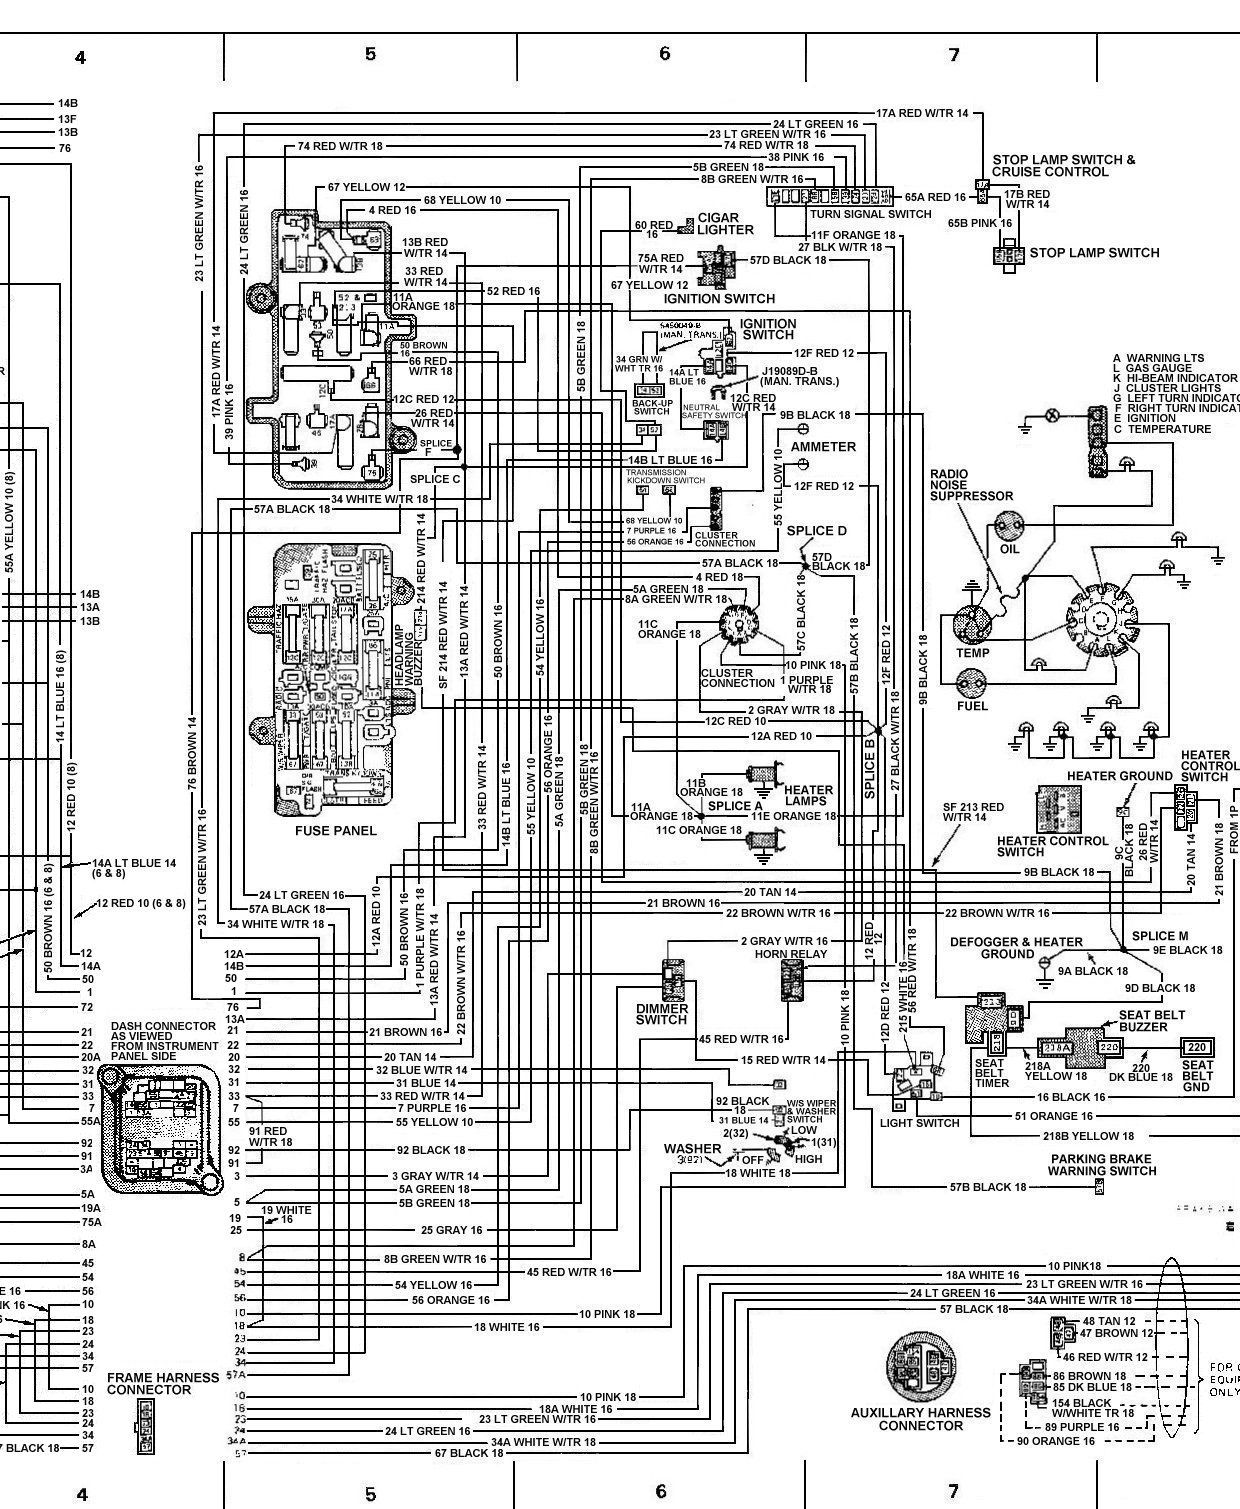 1997 Pontiac Grand Prix Radio Wiring Diagram 1997 Free Engine Image